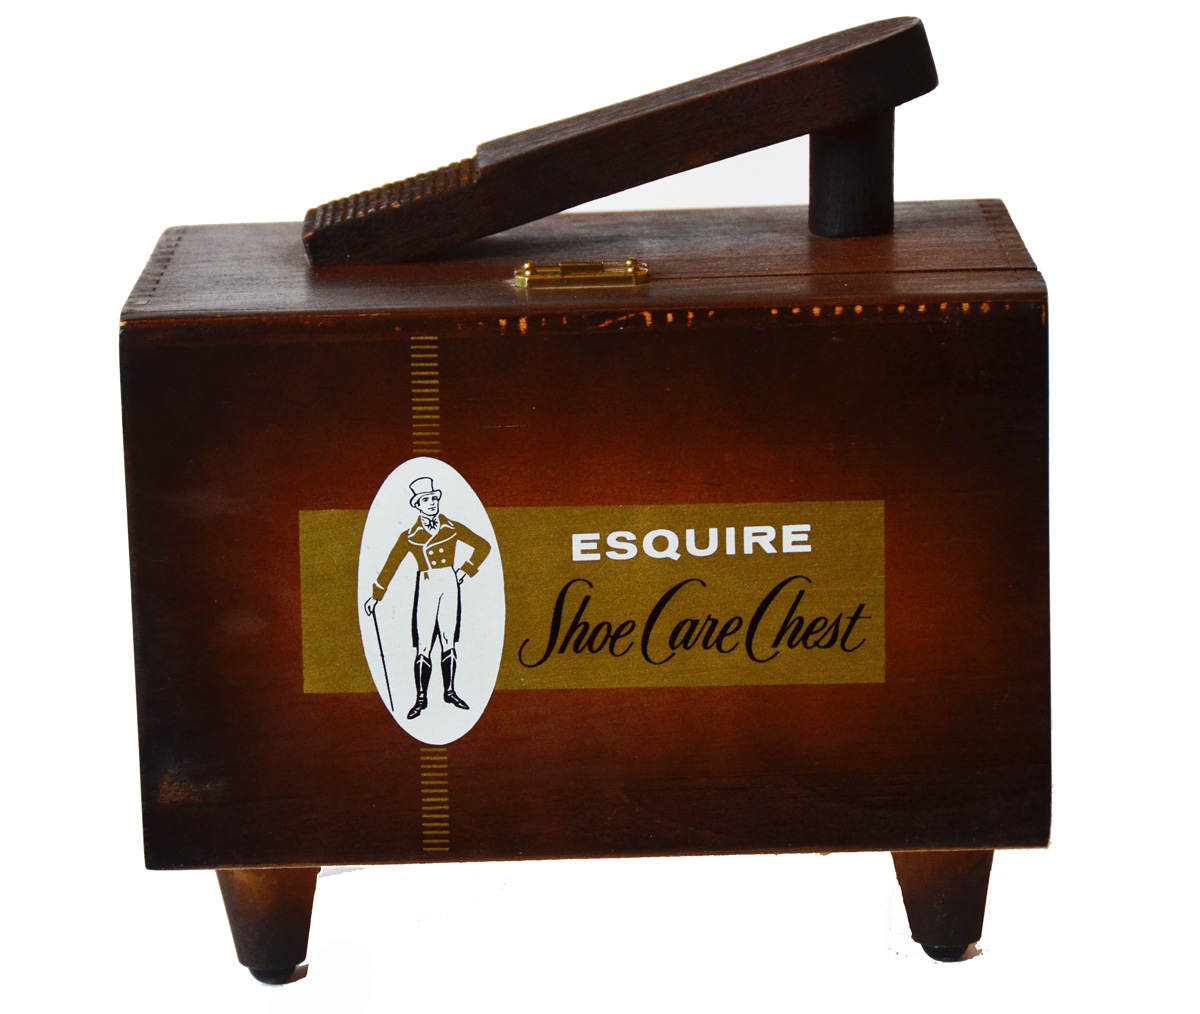 Vintage Esquire Shoe Storage box